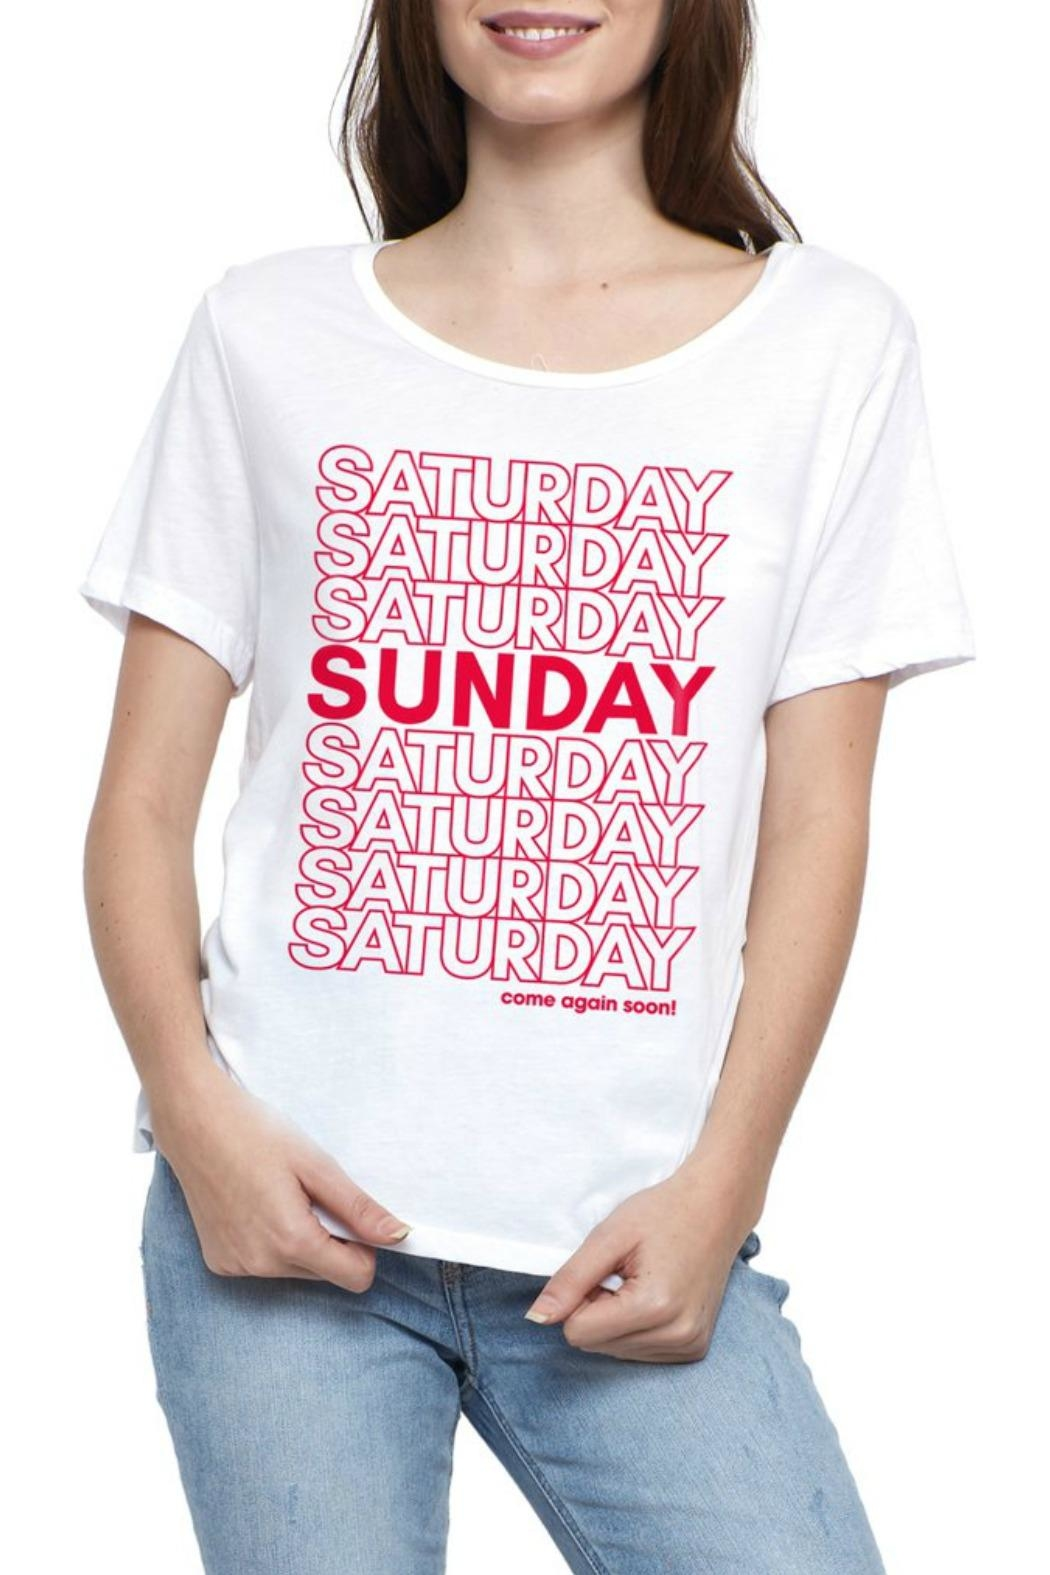 social sunday Come Again T-Shirt - Main Image